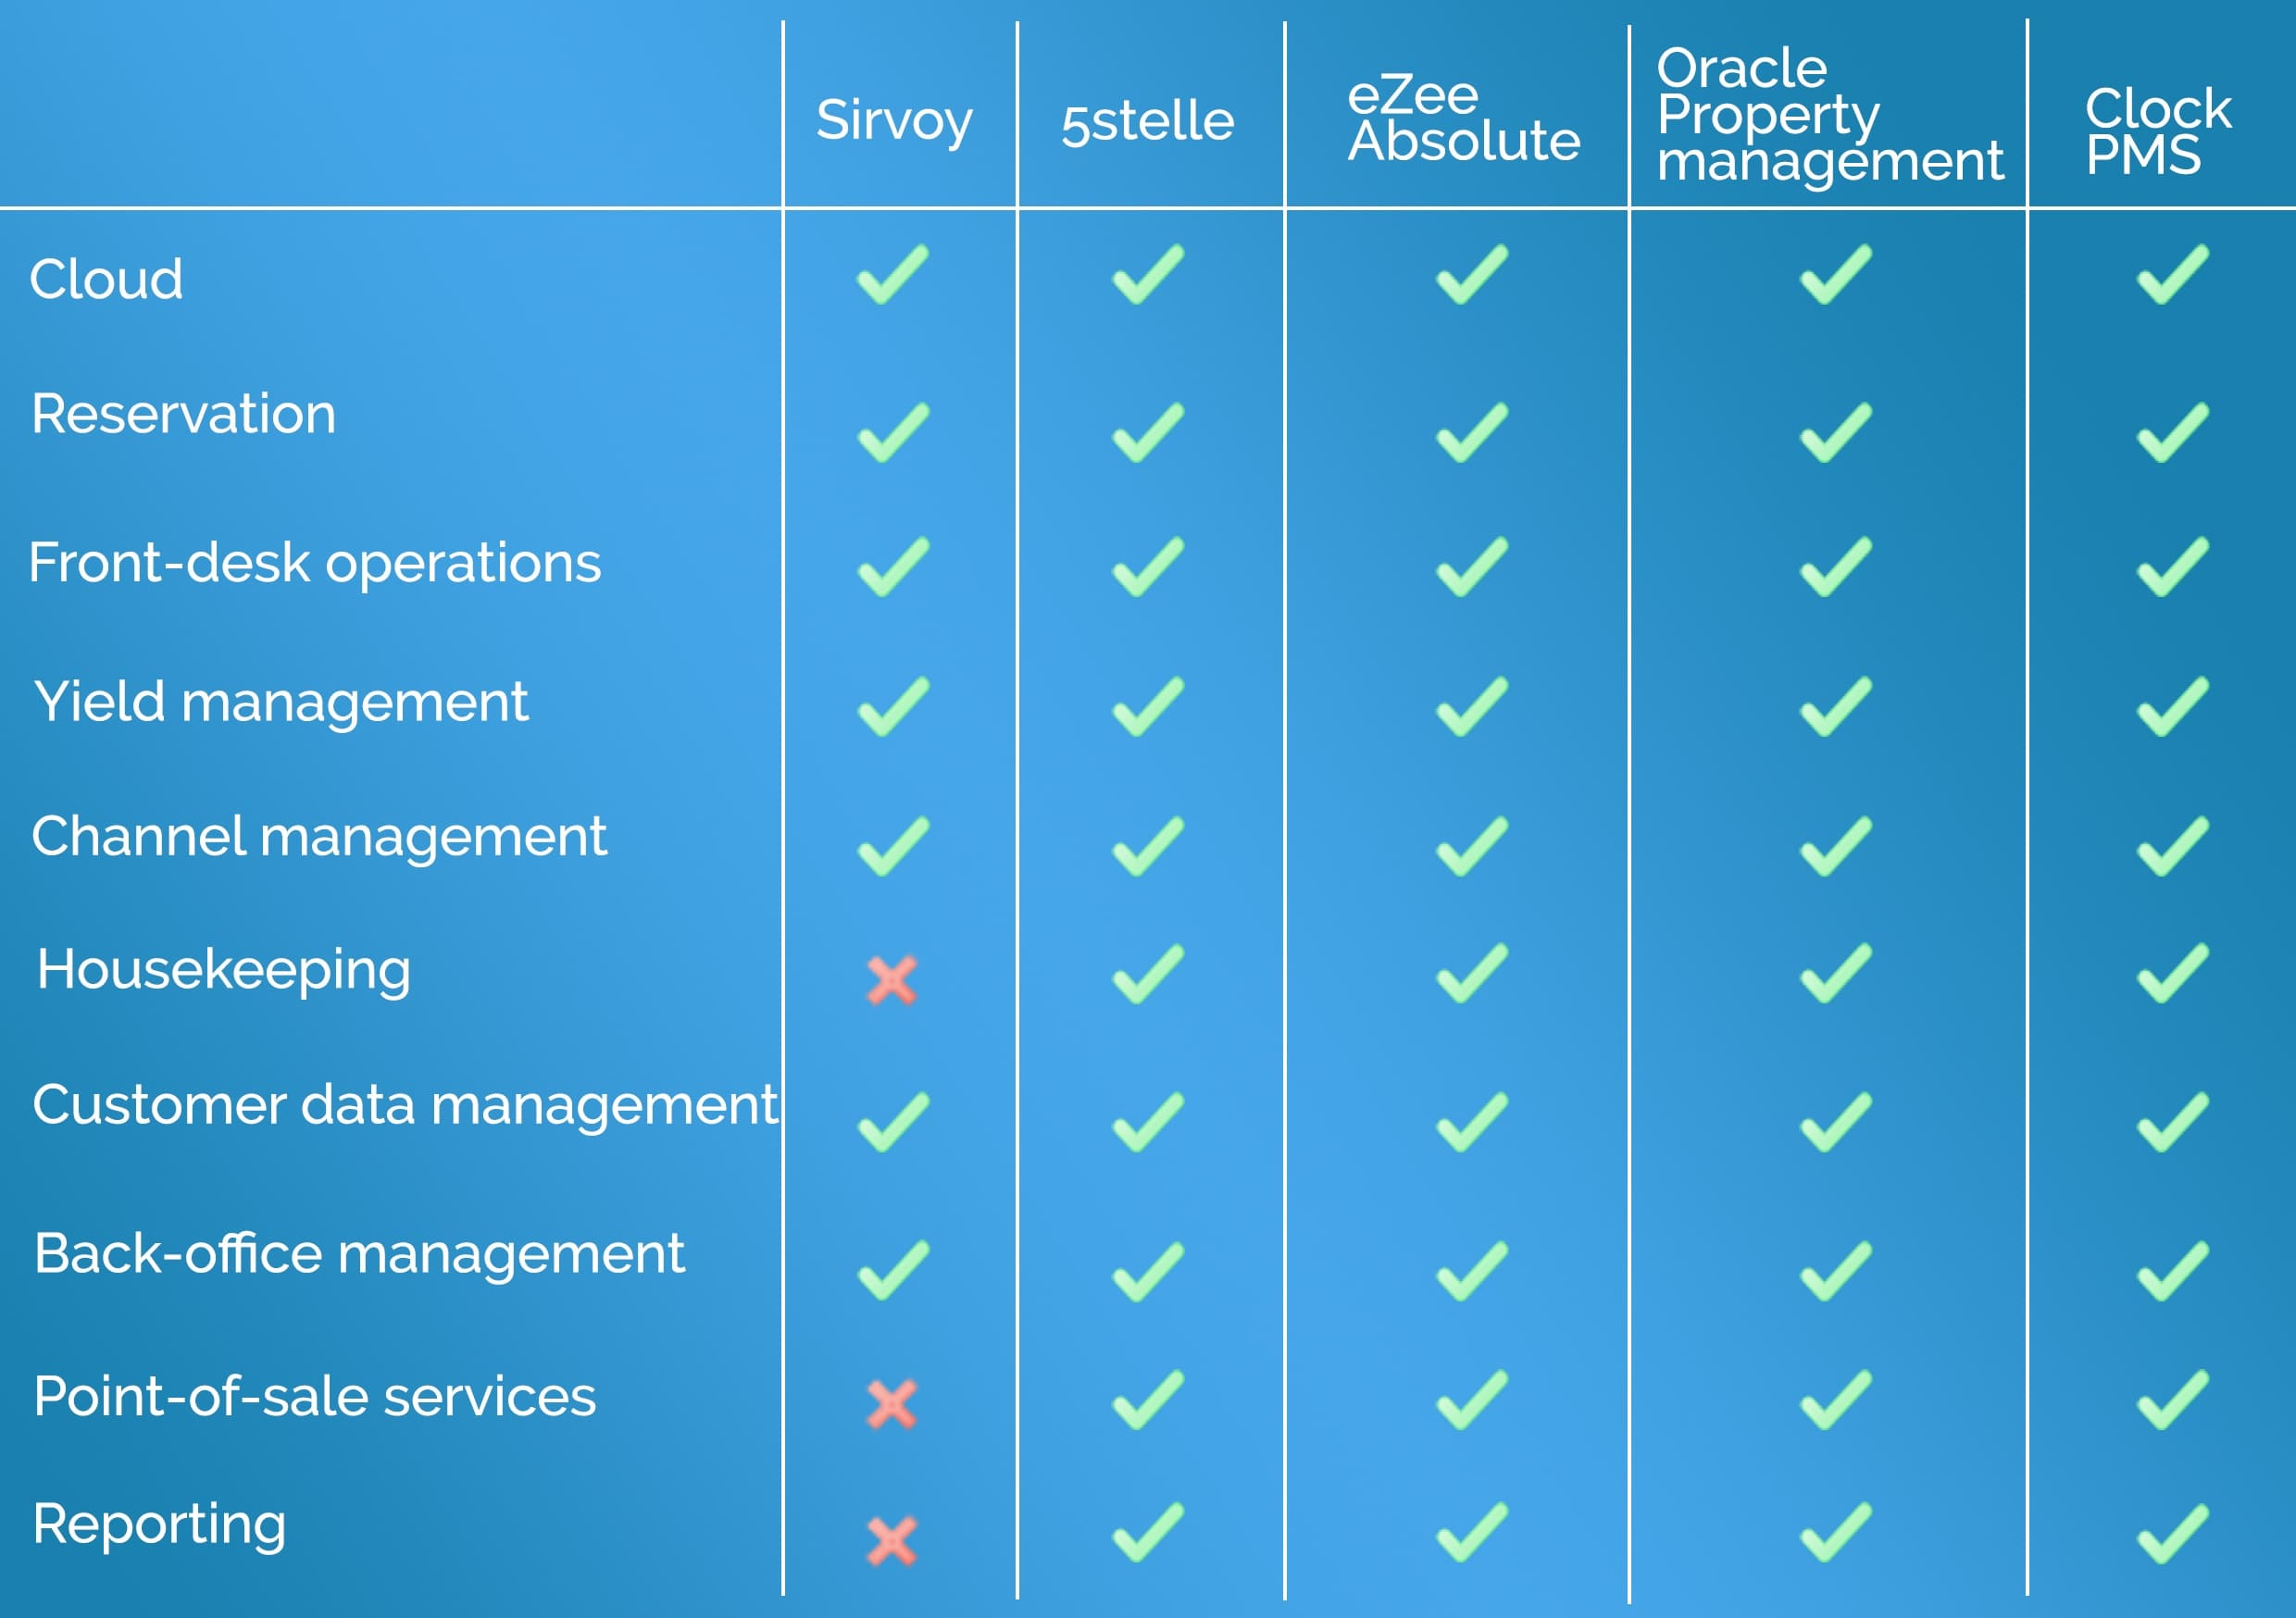 Hotel Property Management Systems: their core functionality and